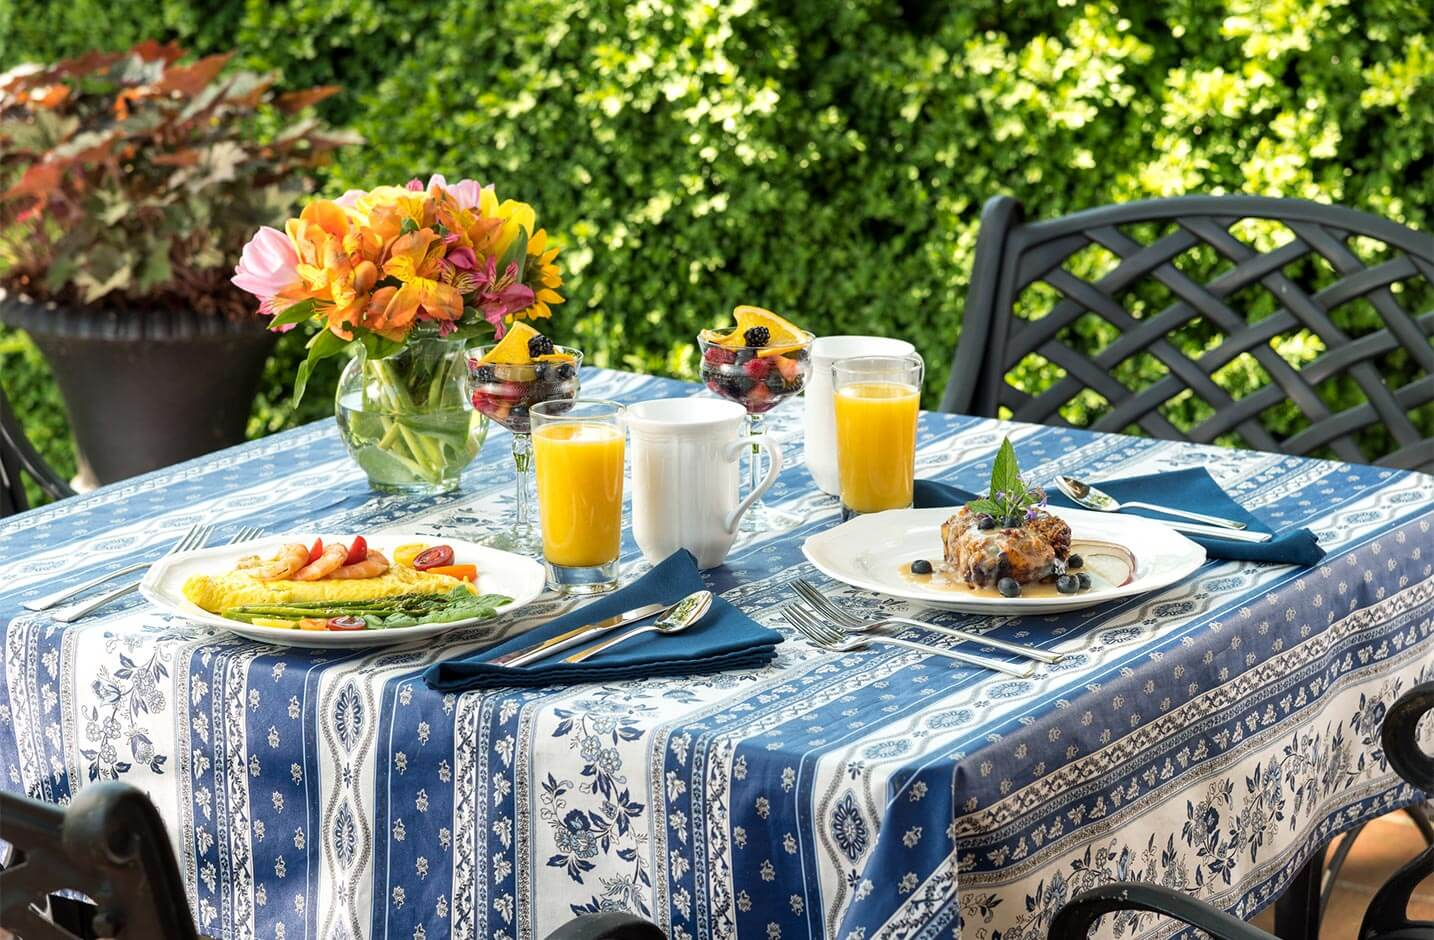 Outdoor table with full breakfast at our Cheaspeake Bay bed and breakfast